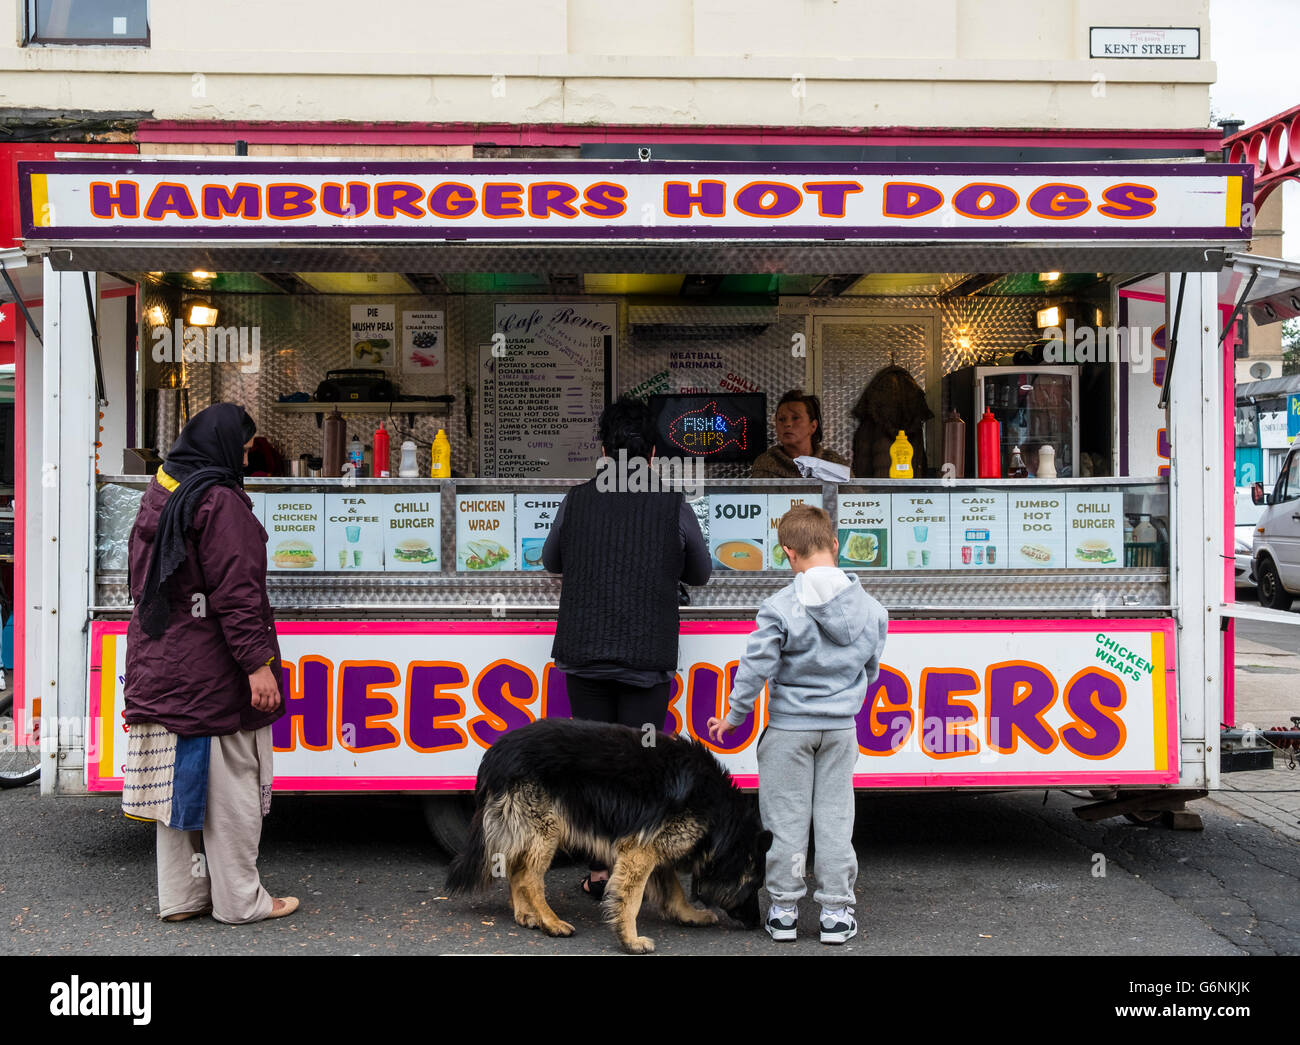 Fast food burger van selling cheap snacks at Barras market in Gallowgate Glasgow, United Kingdom - Stock Image